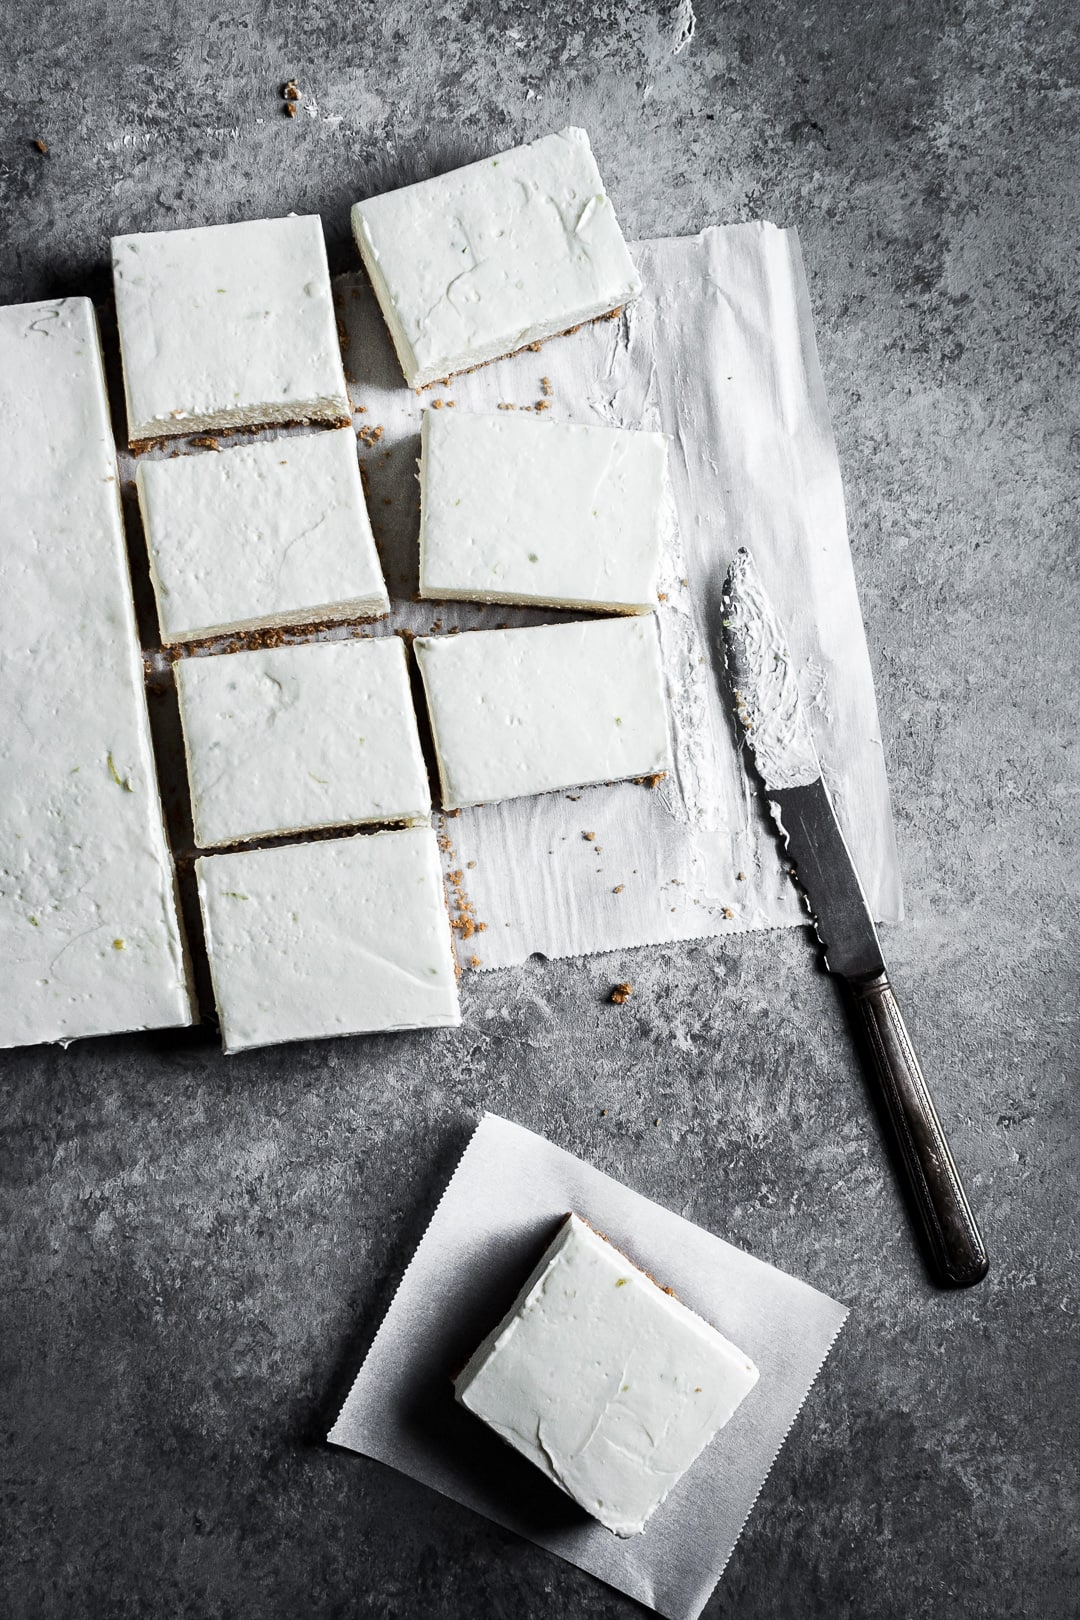 Sliced cheesecake bars on parchment paper squares on a grey background with a vintage knife nearby